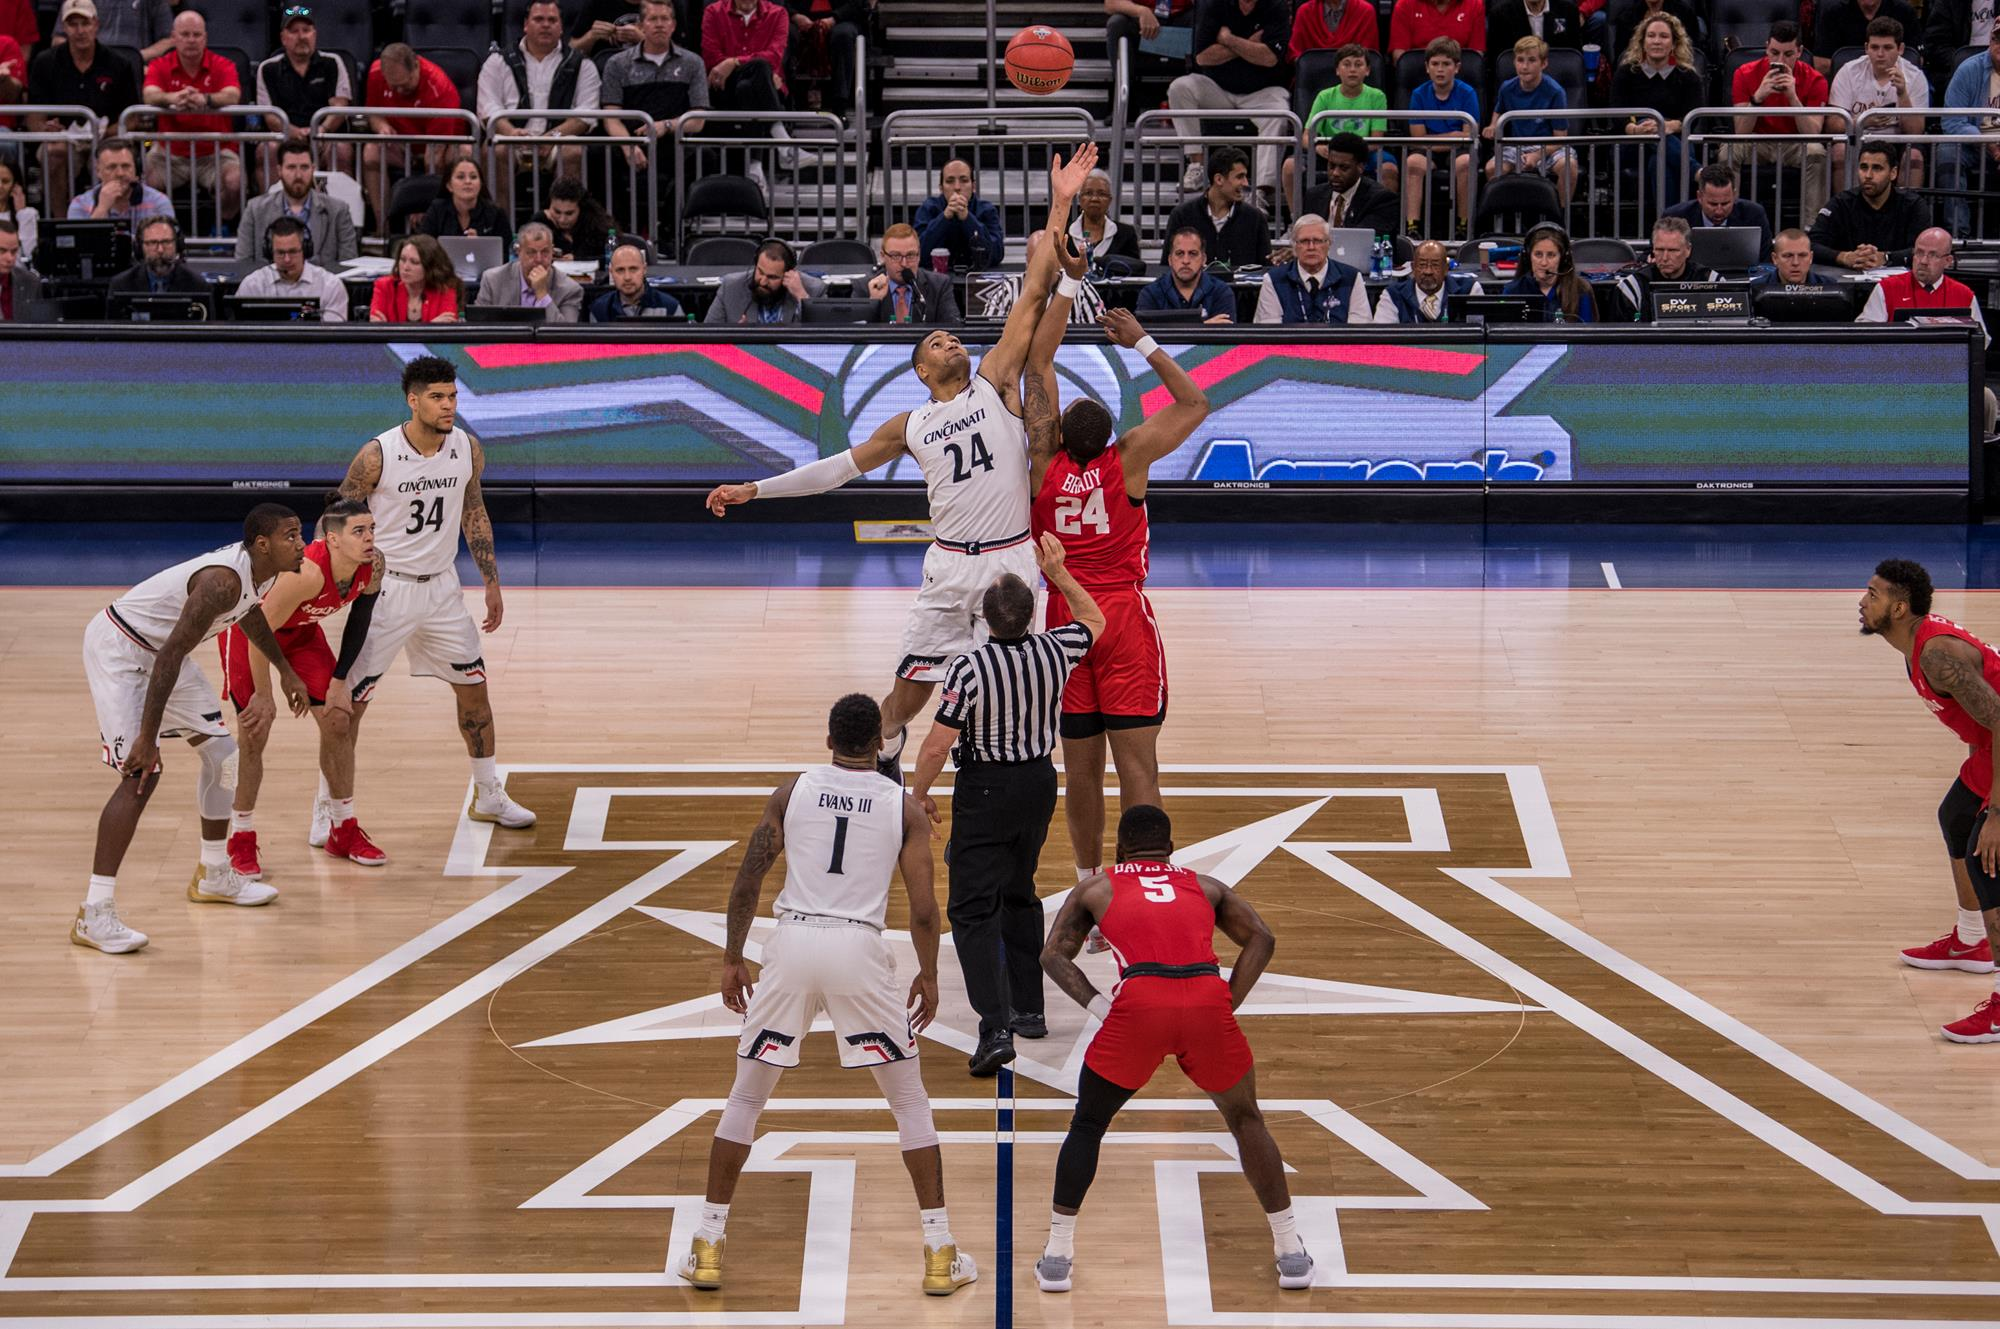 66734cb743a The American Announces 2018-19 Men's Basketball Conference Schedule ...